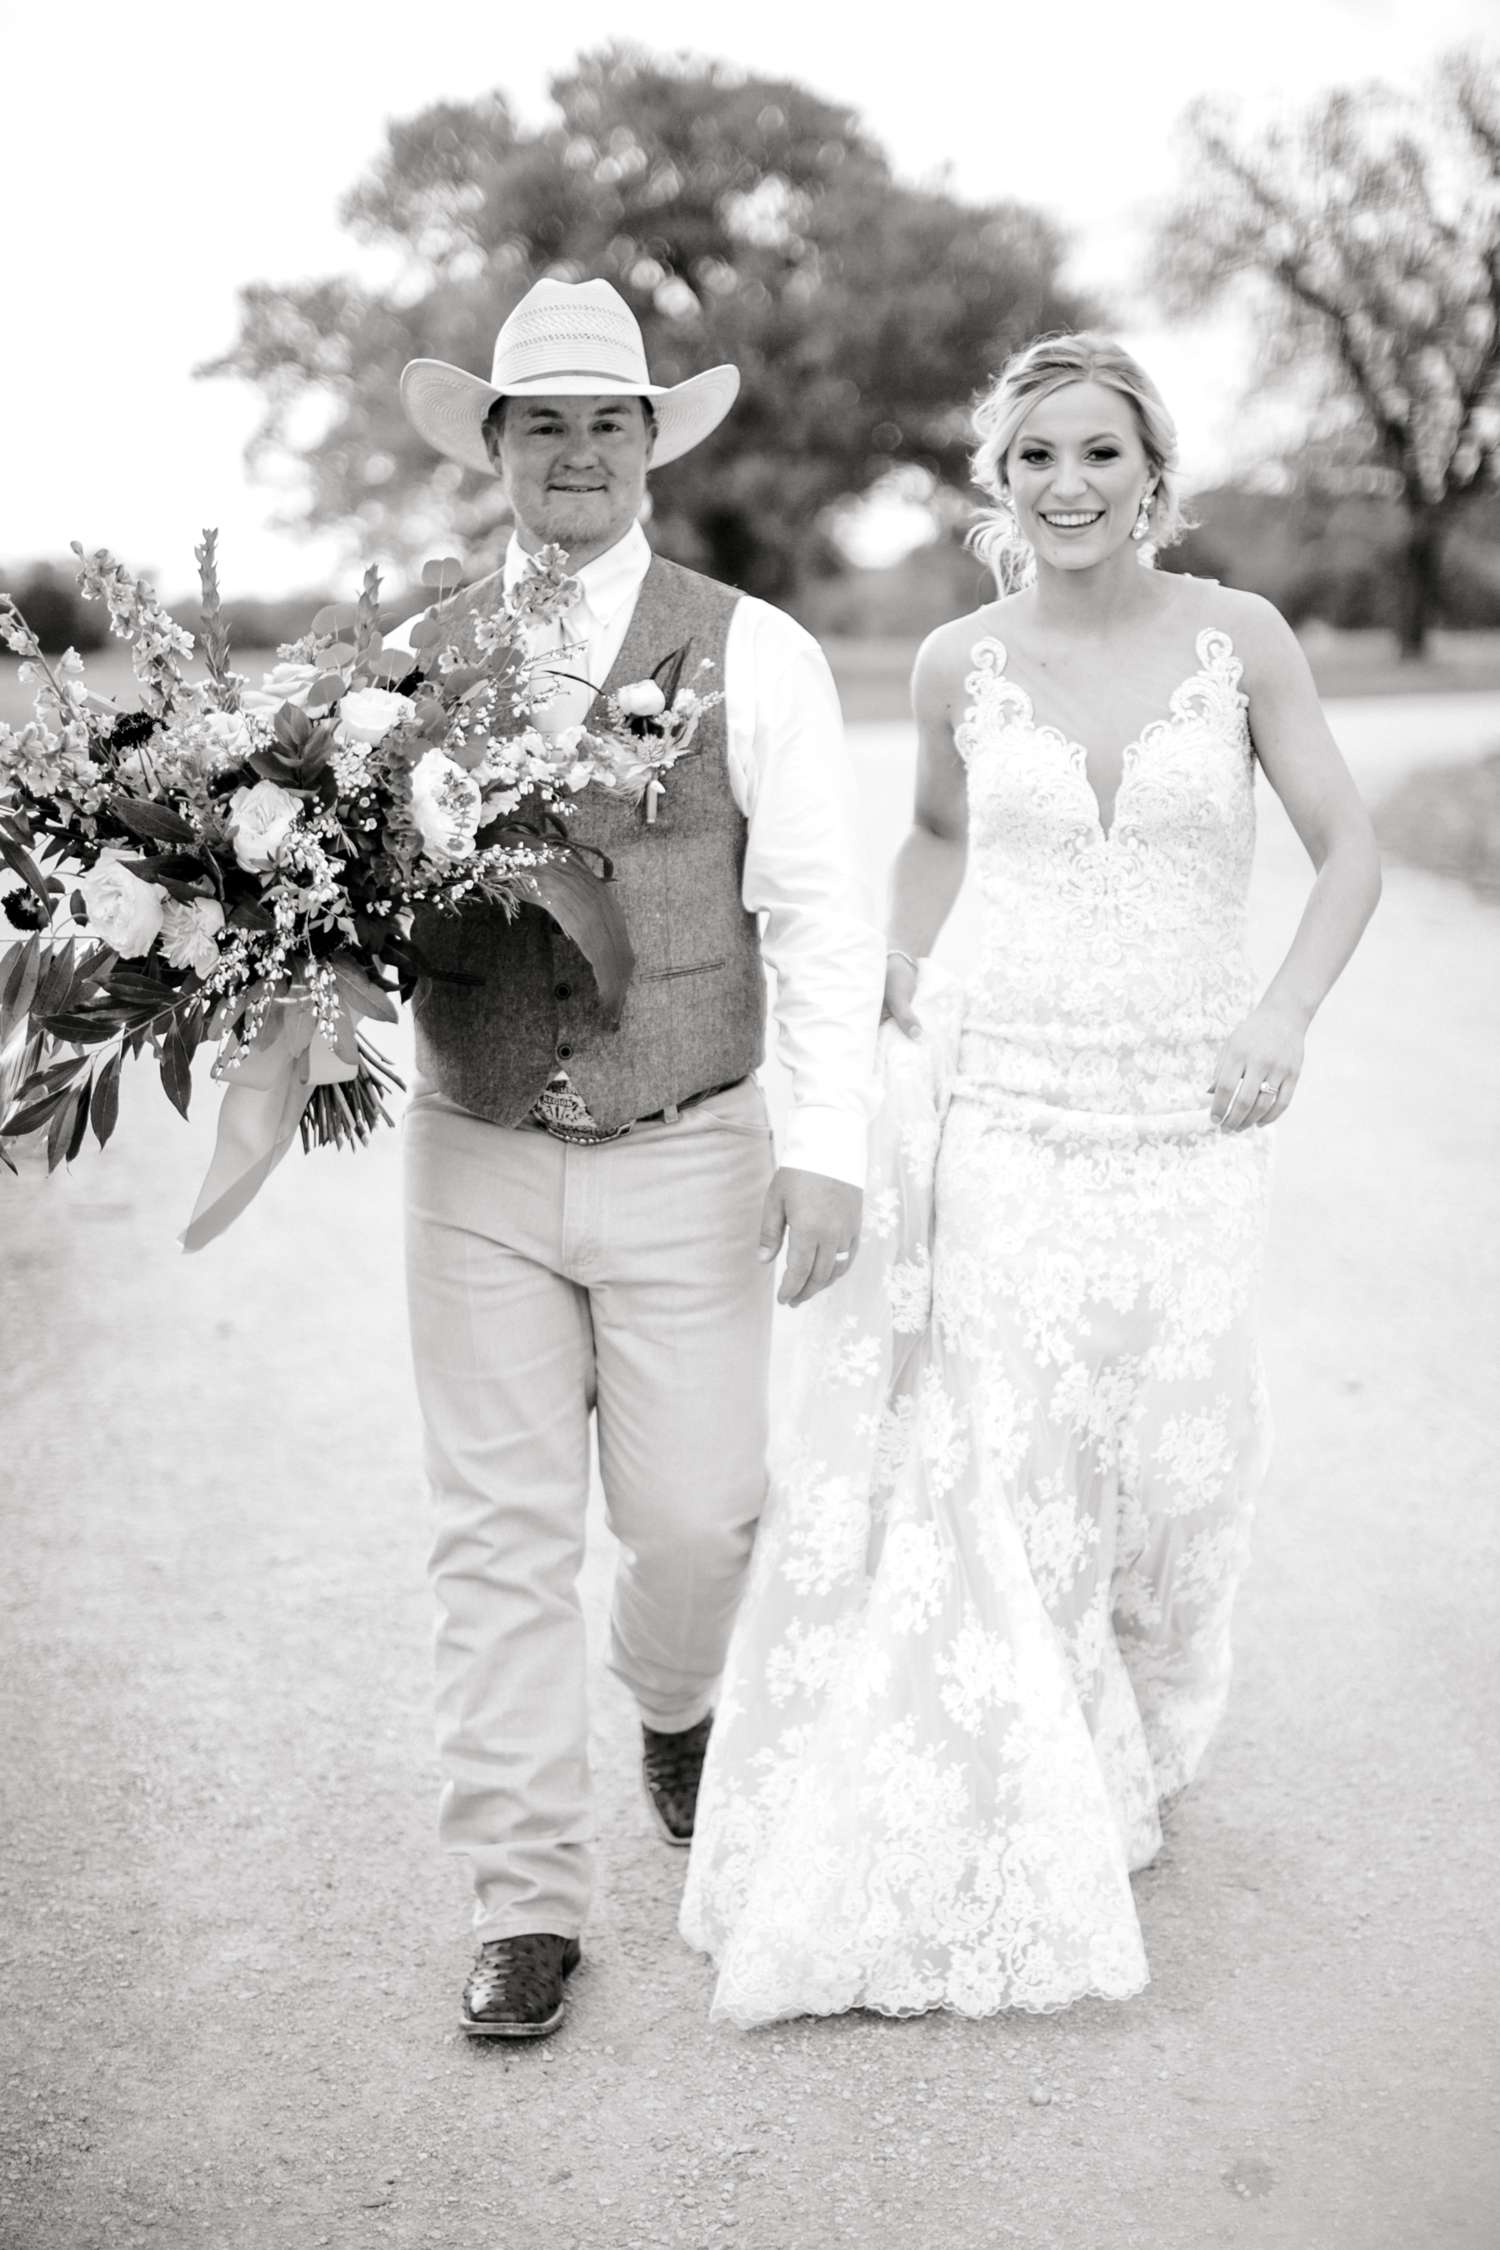 SARAH+TREVOR+BADGETT+SPARROW+CREEK+GRAHAM+TEXAS+ALLEEJ+WEDDINGS_0109.jpg